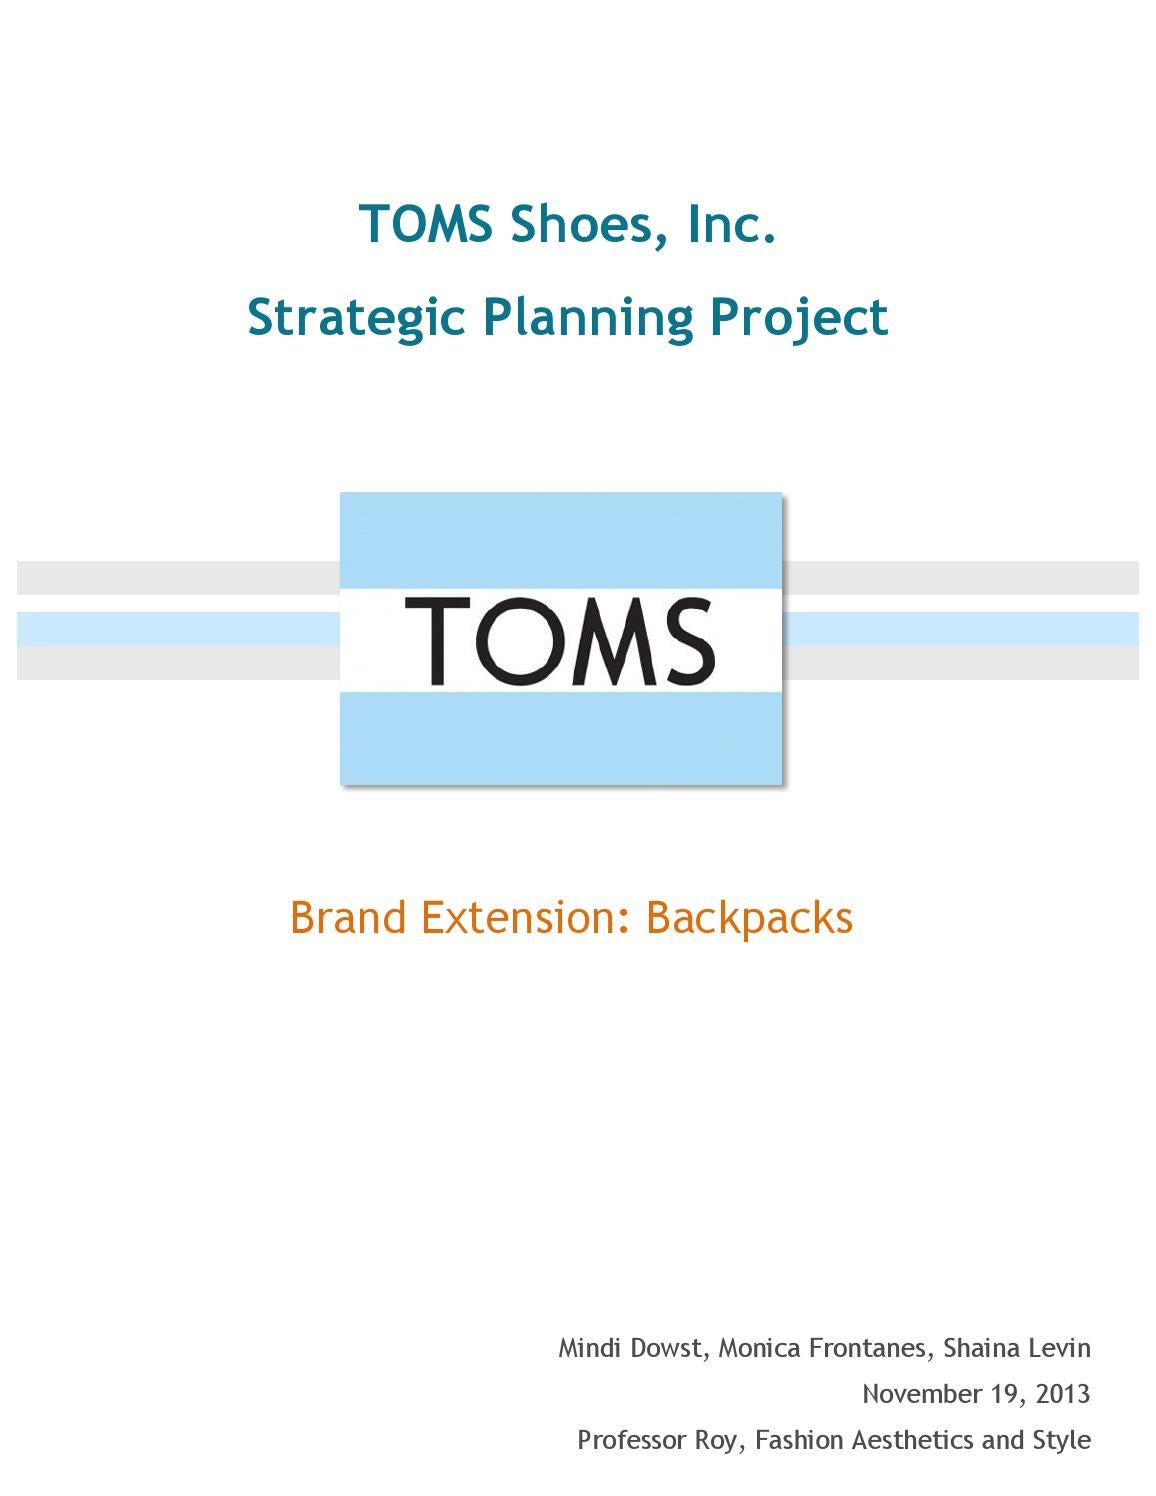 toms brand extension report by mindidowst issuu